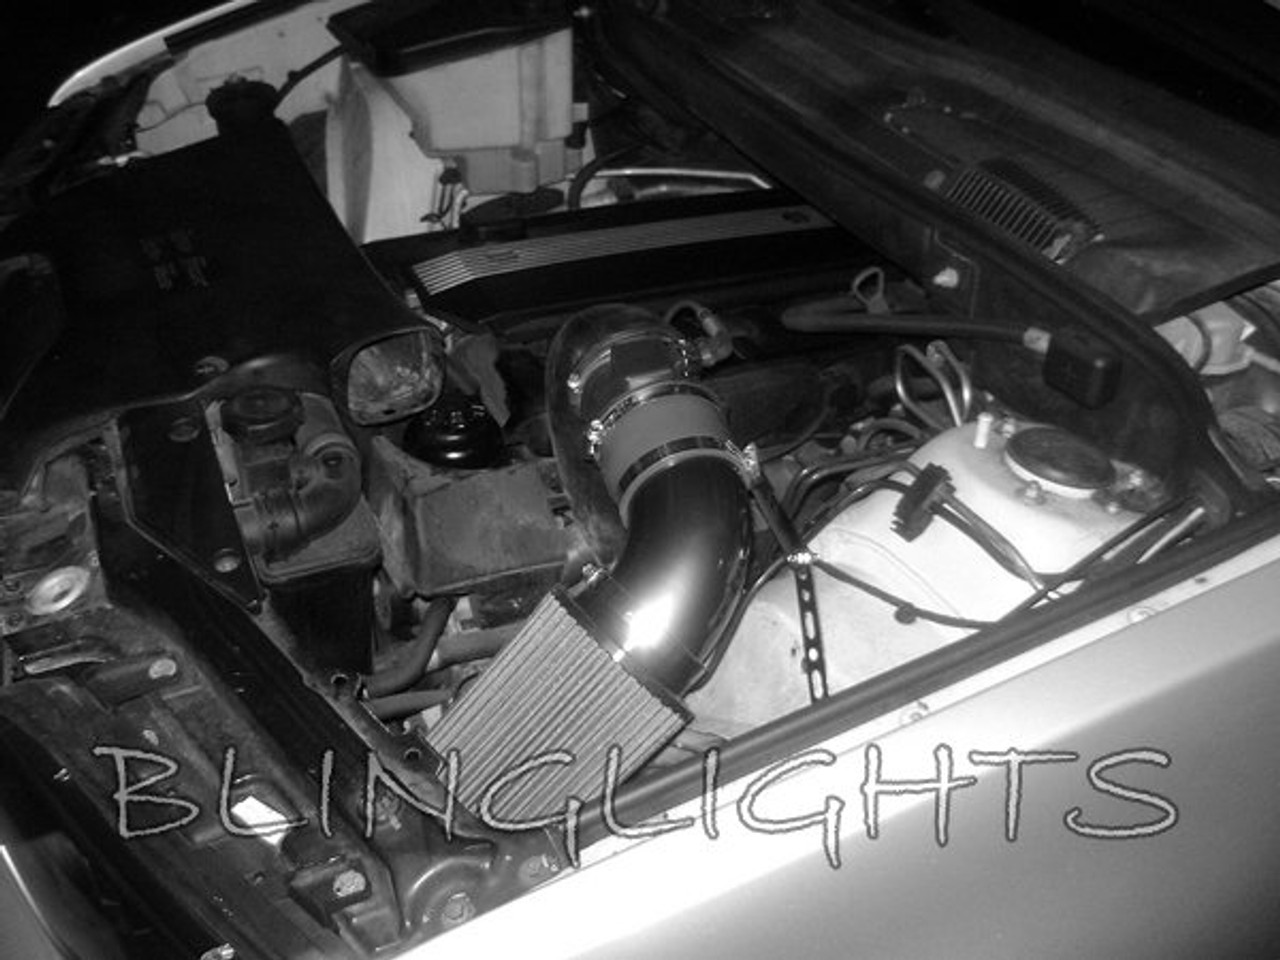 2000 2006 Bmw X5 E53 3 0l I6 Cai Cold Air Intake Kit Engine Motor Performance Accessory Blinglights Com